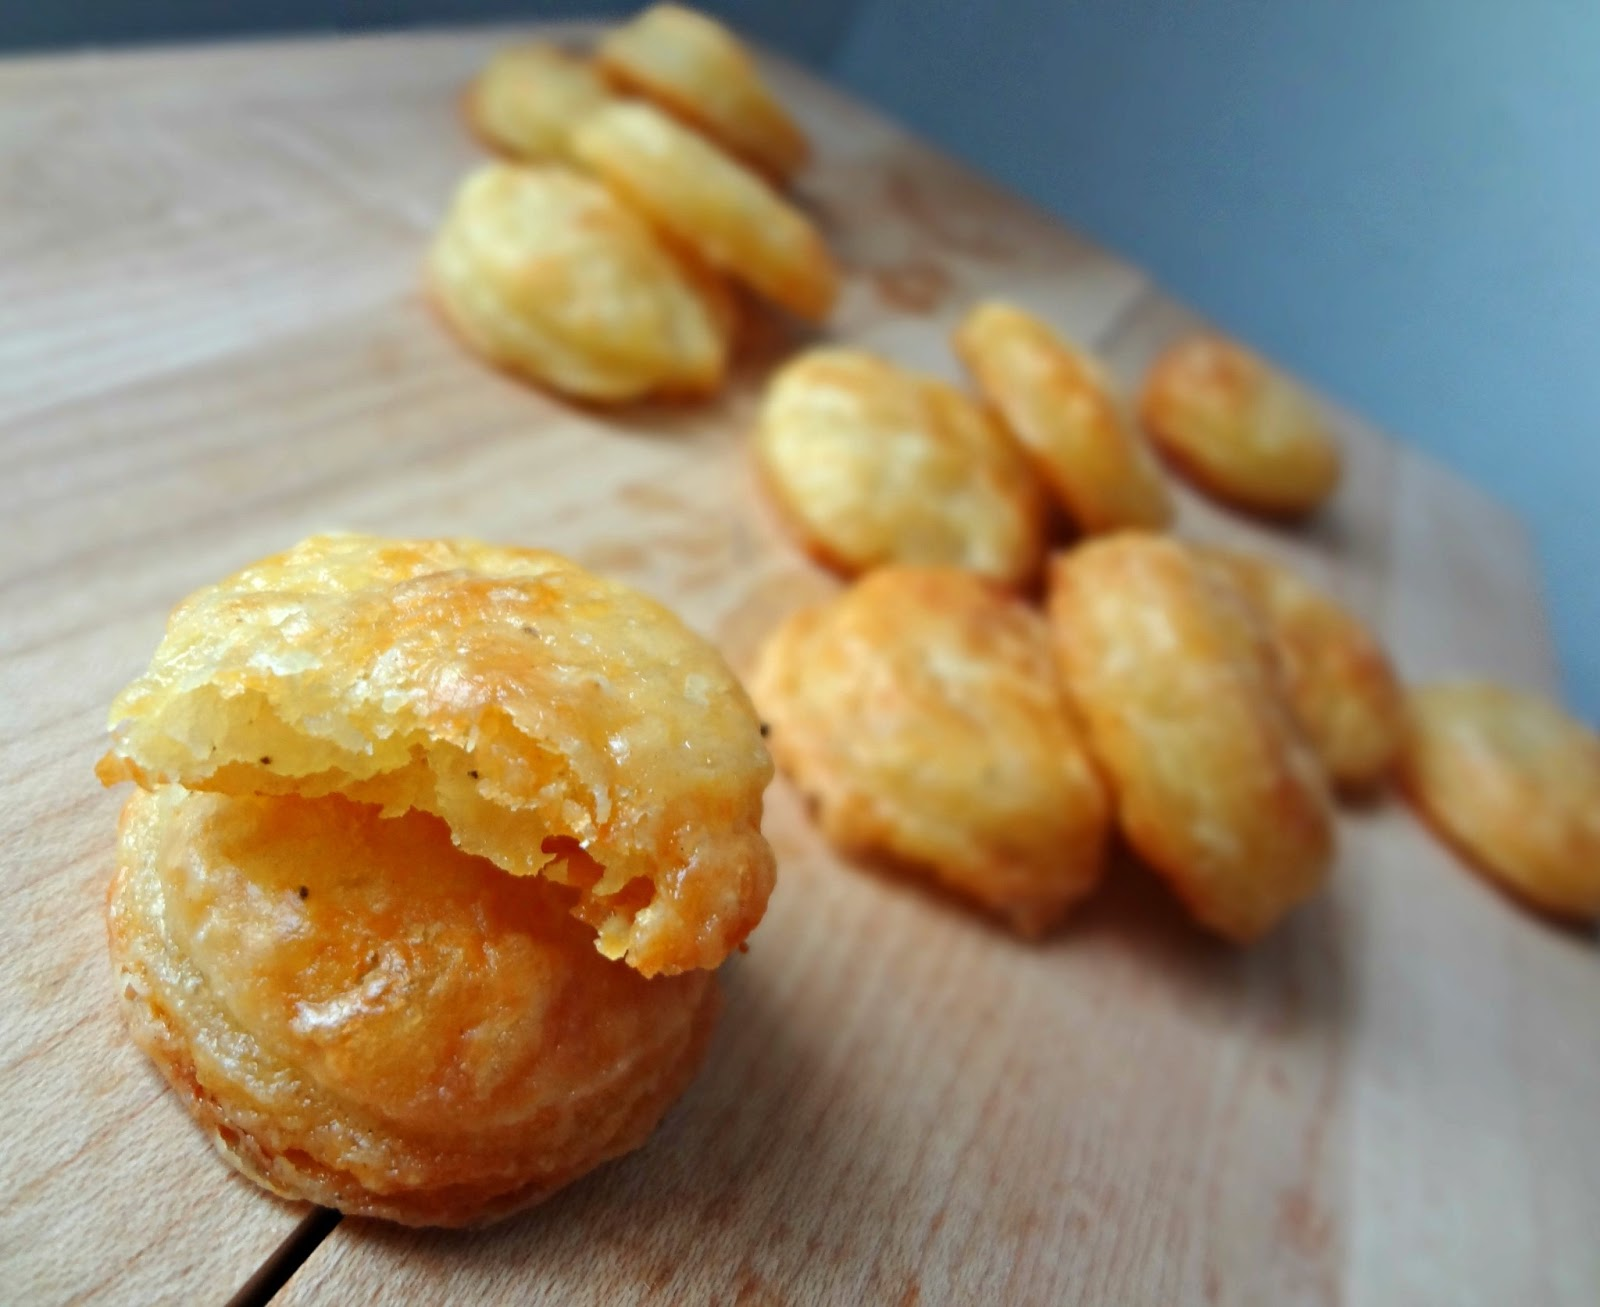 The Cooking Actress: Homemade Cheddar Cheese Crackers (Cheez-Its)